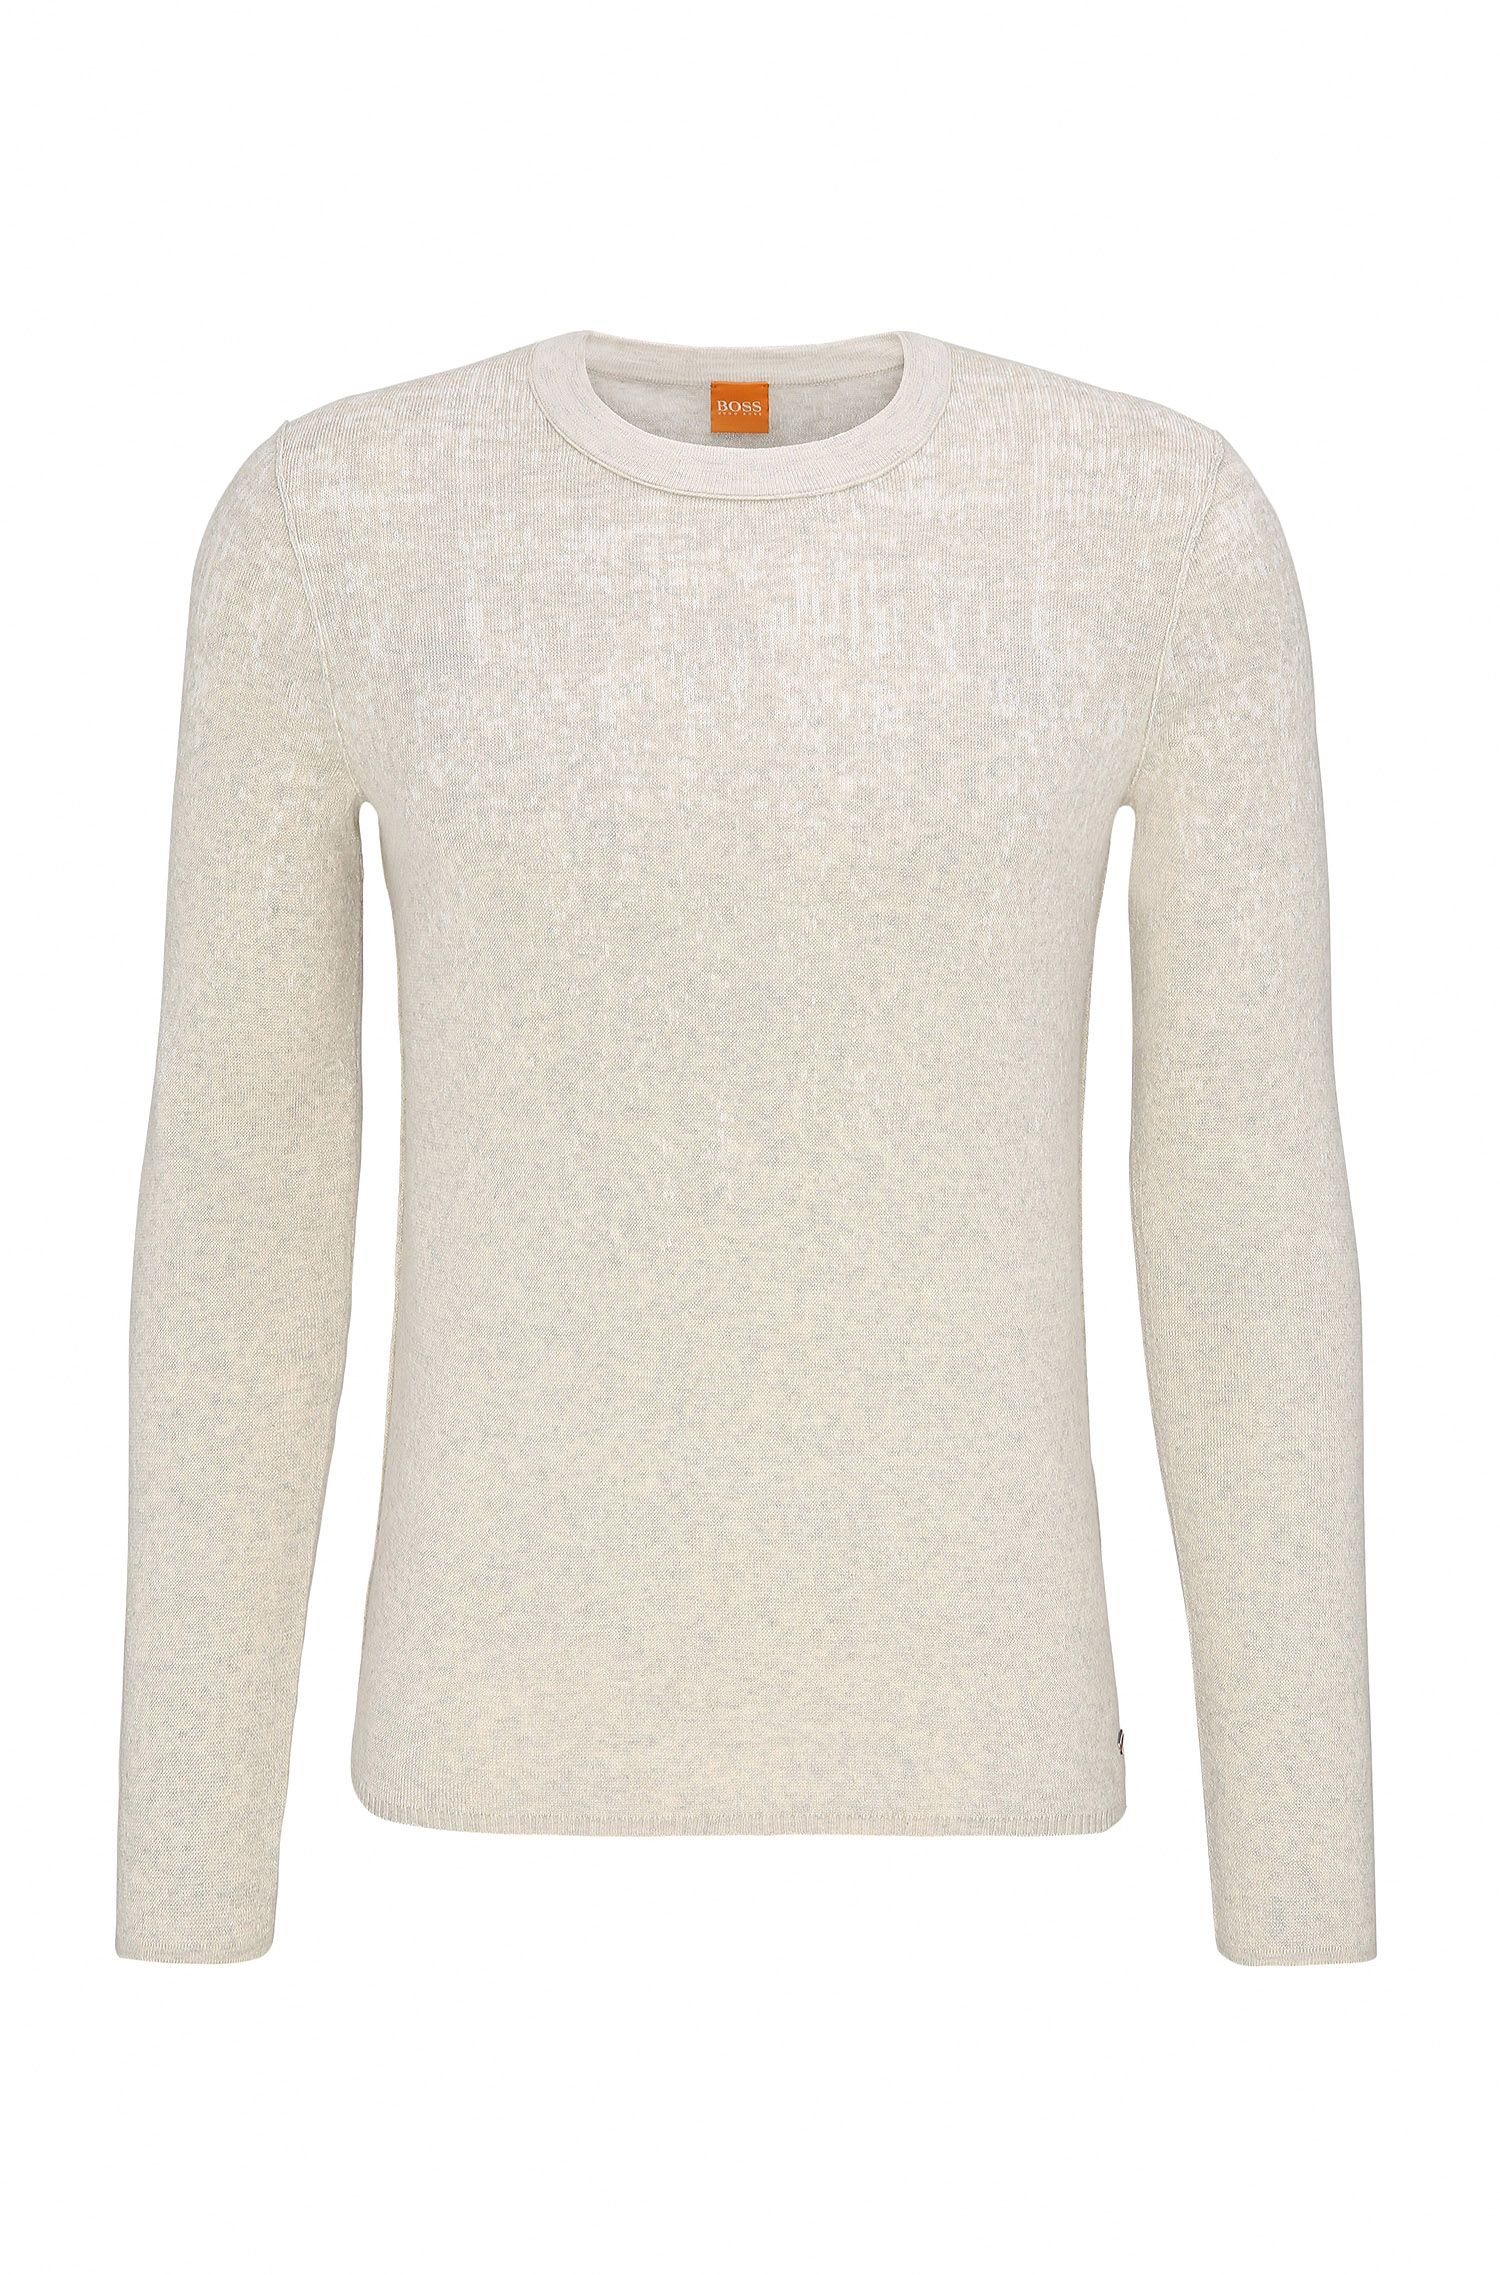 Slim-fit sweater in cotton and silk blend